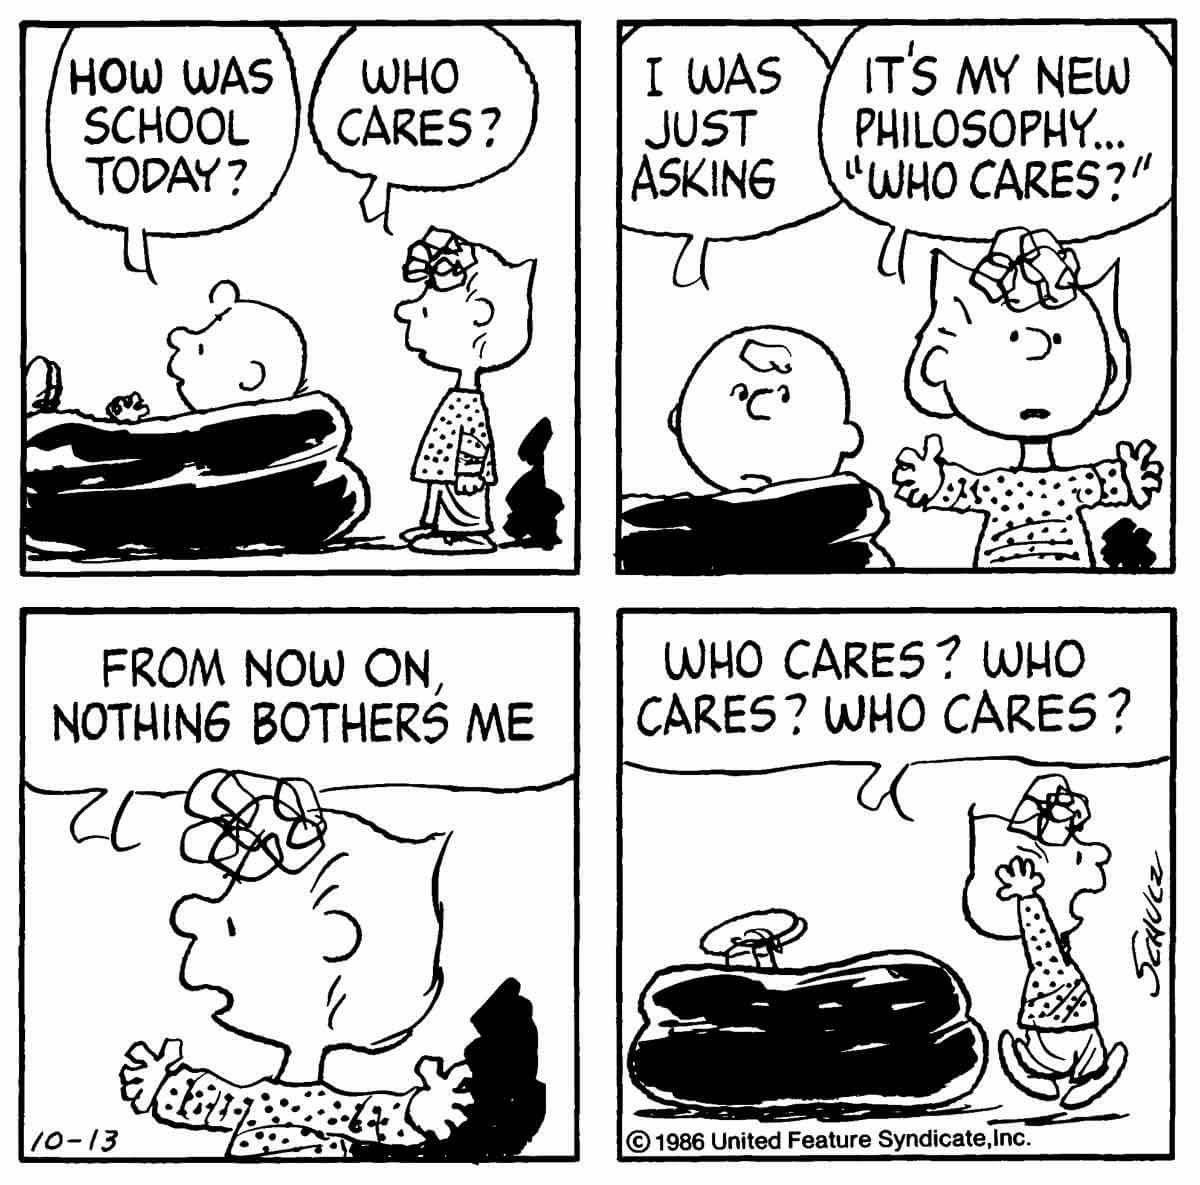 Thepntsgang Pnts Schulz Charliebrown Sally School Philosophy Whocares Snoopy Cartoon Snoopy Funny Snoopy Comics